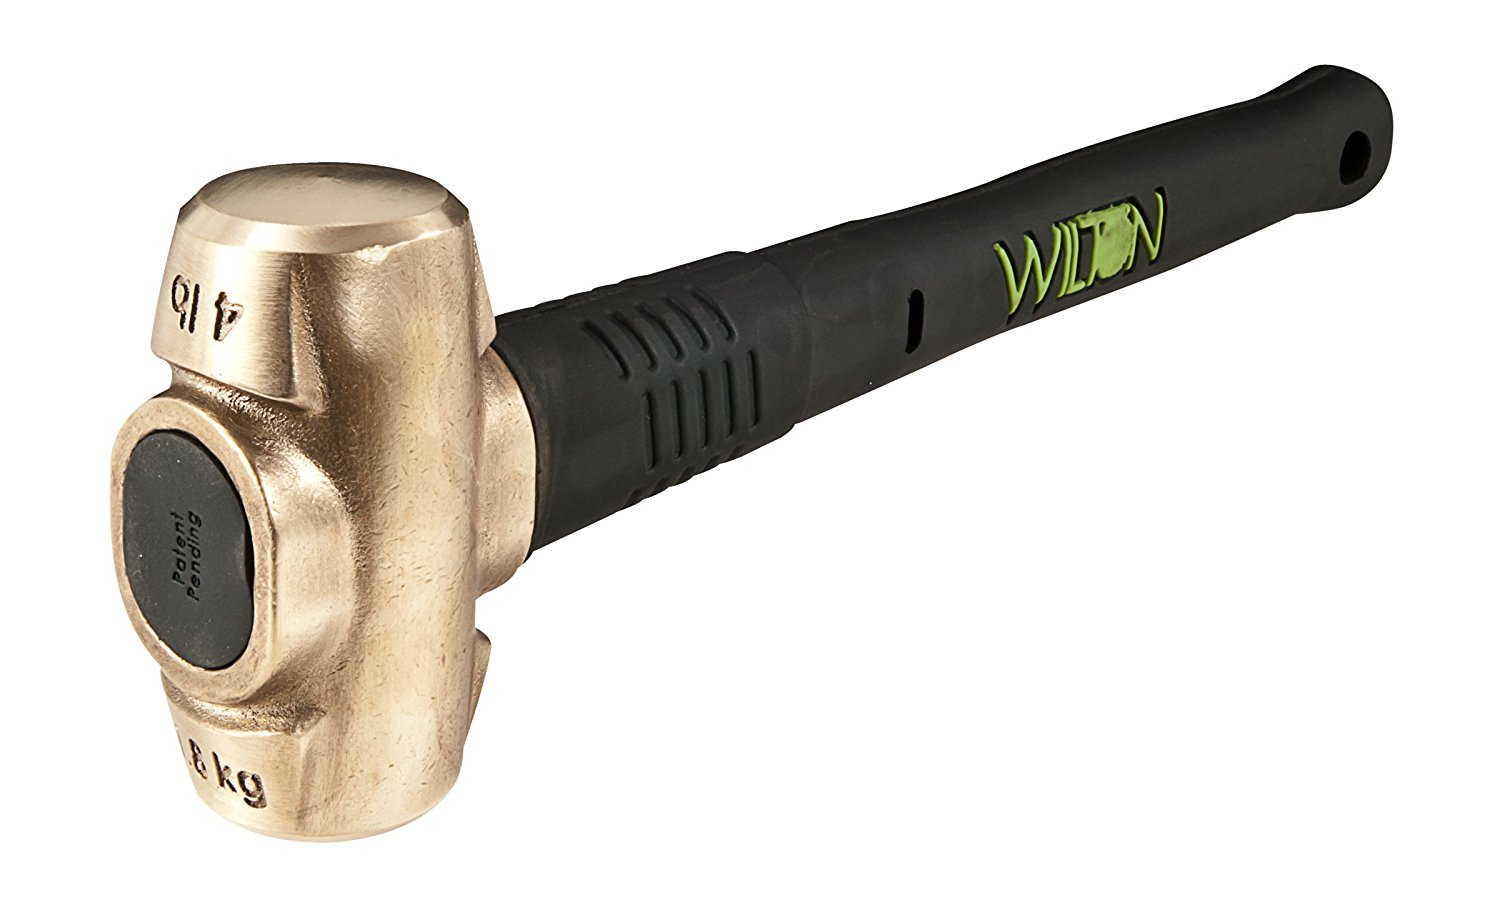 Wilton 90416 4-pound Head, 16 B.A.S.H Brass Hammer with Safety Plate Securing Head to Handle